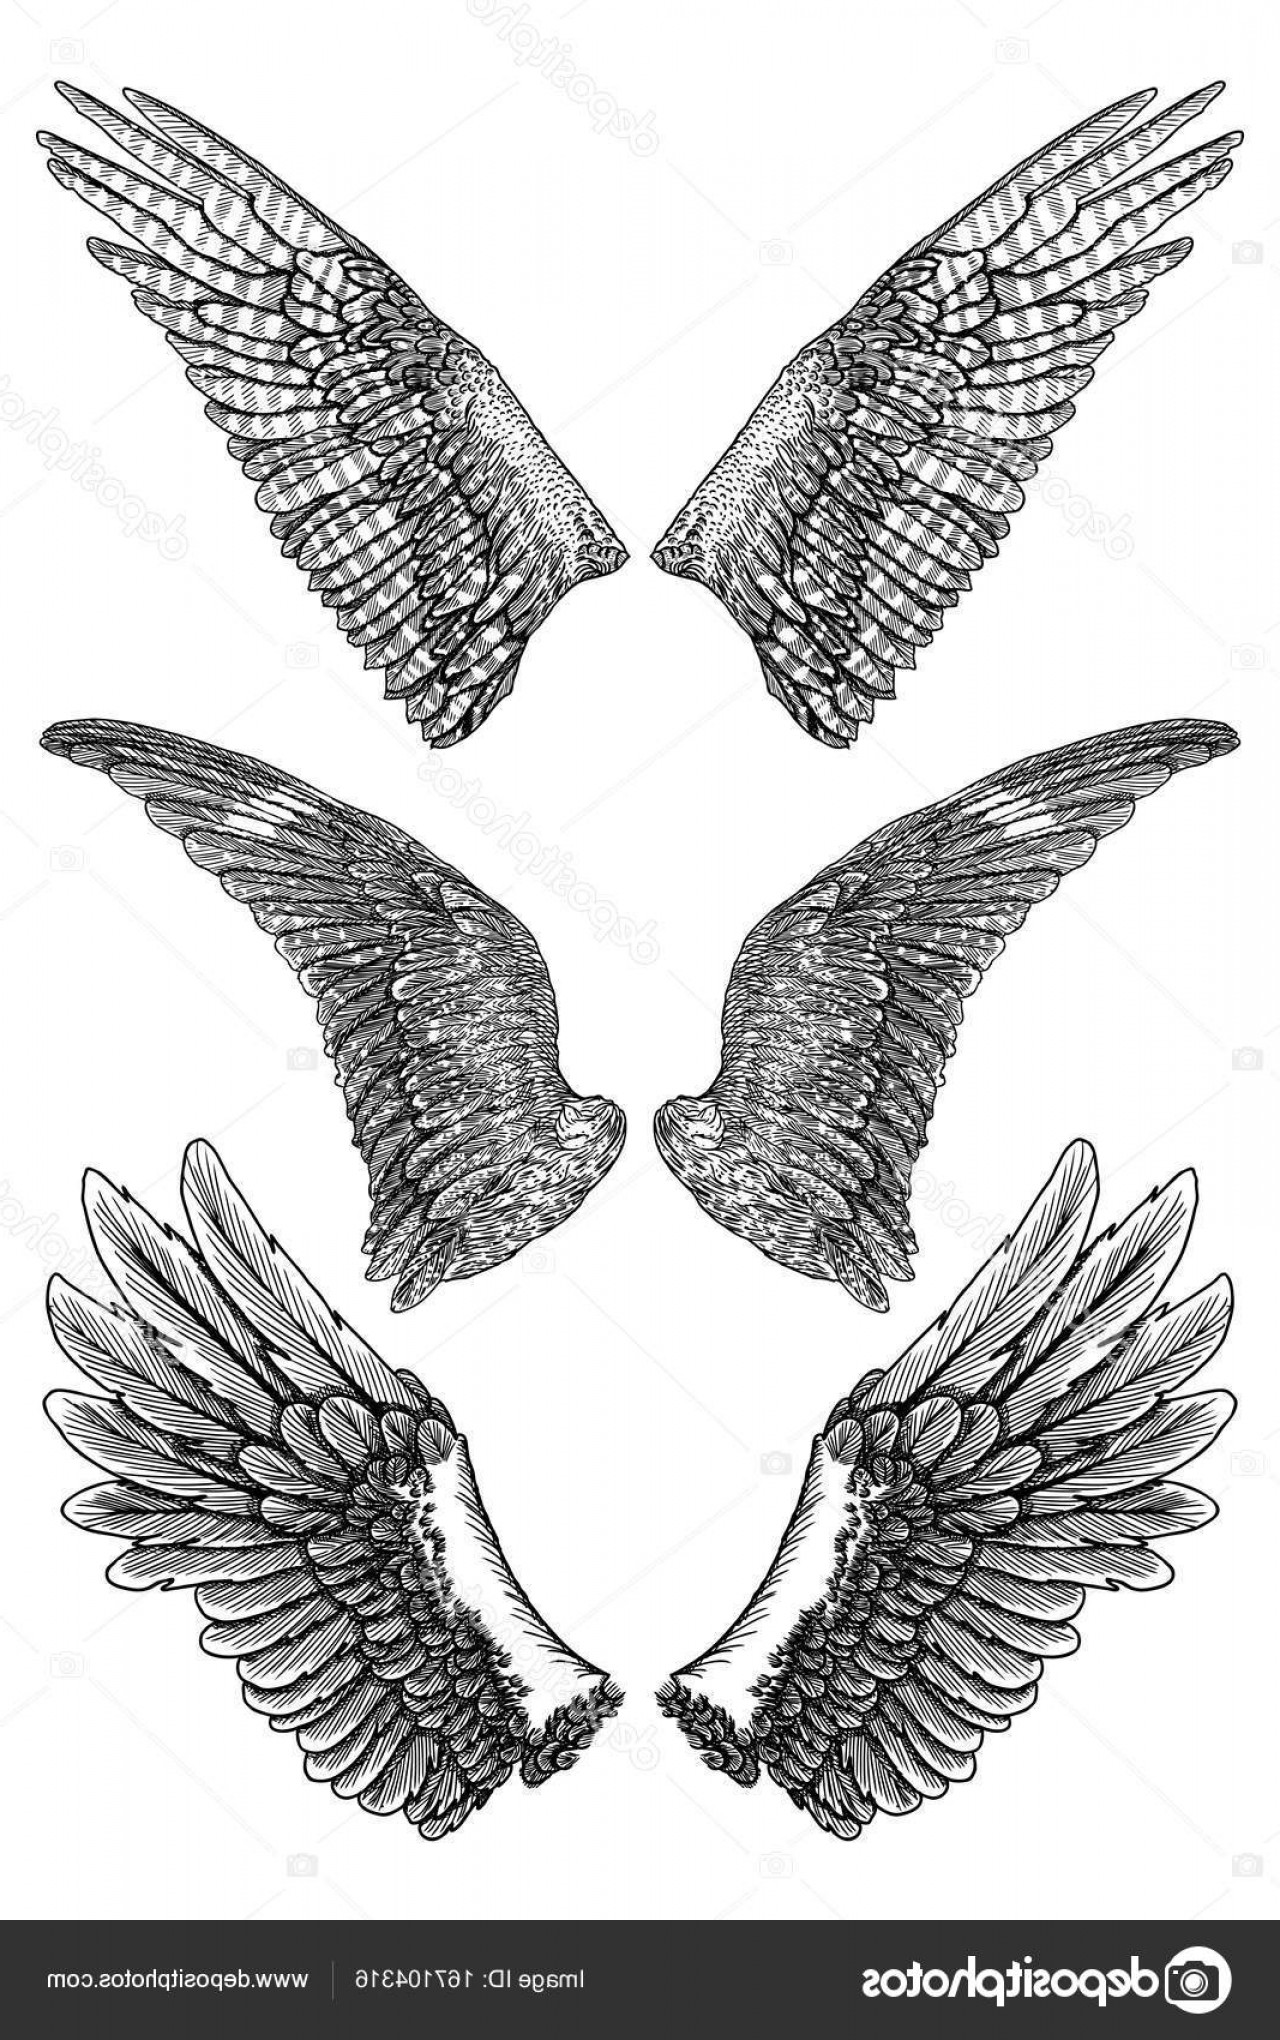 Falcon Wing Vector Art: Stock Illustration Pair Of Spread Out Eagle